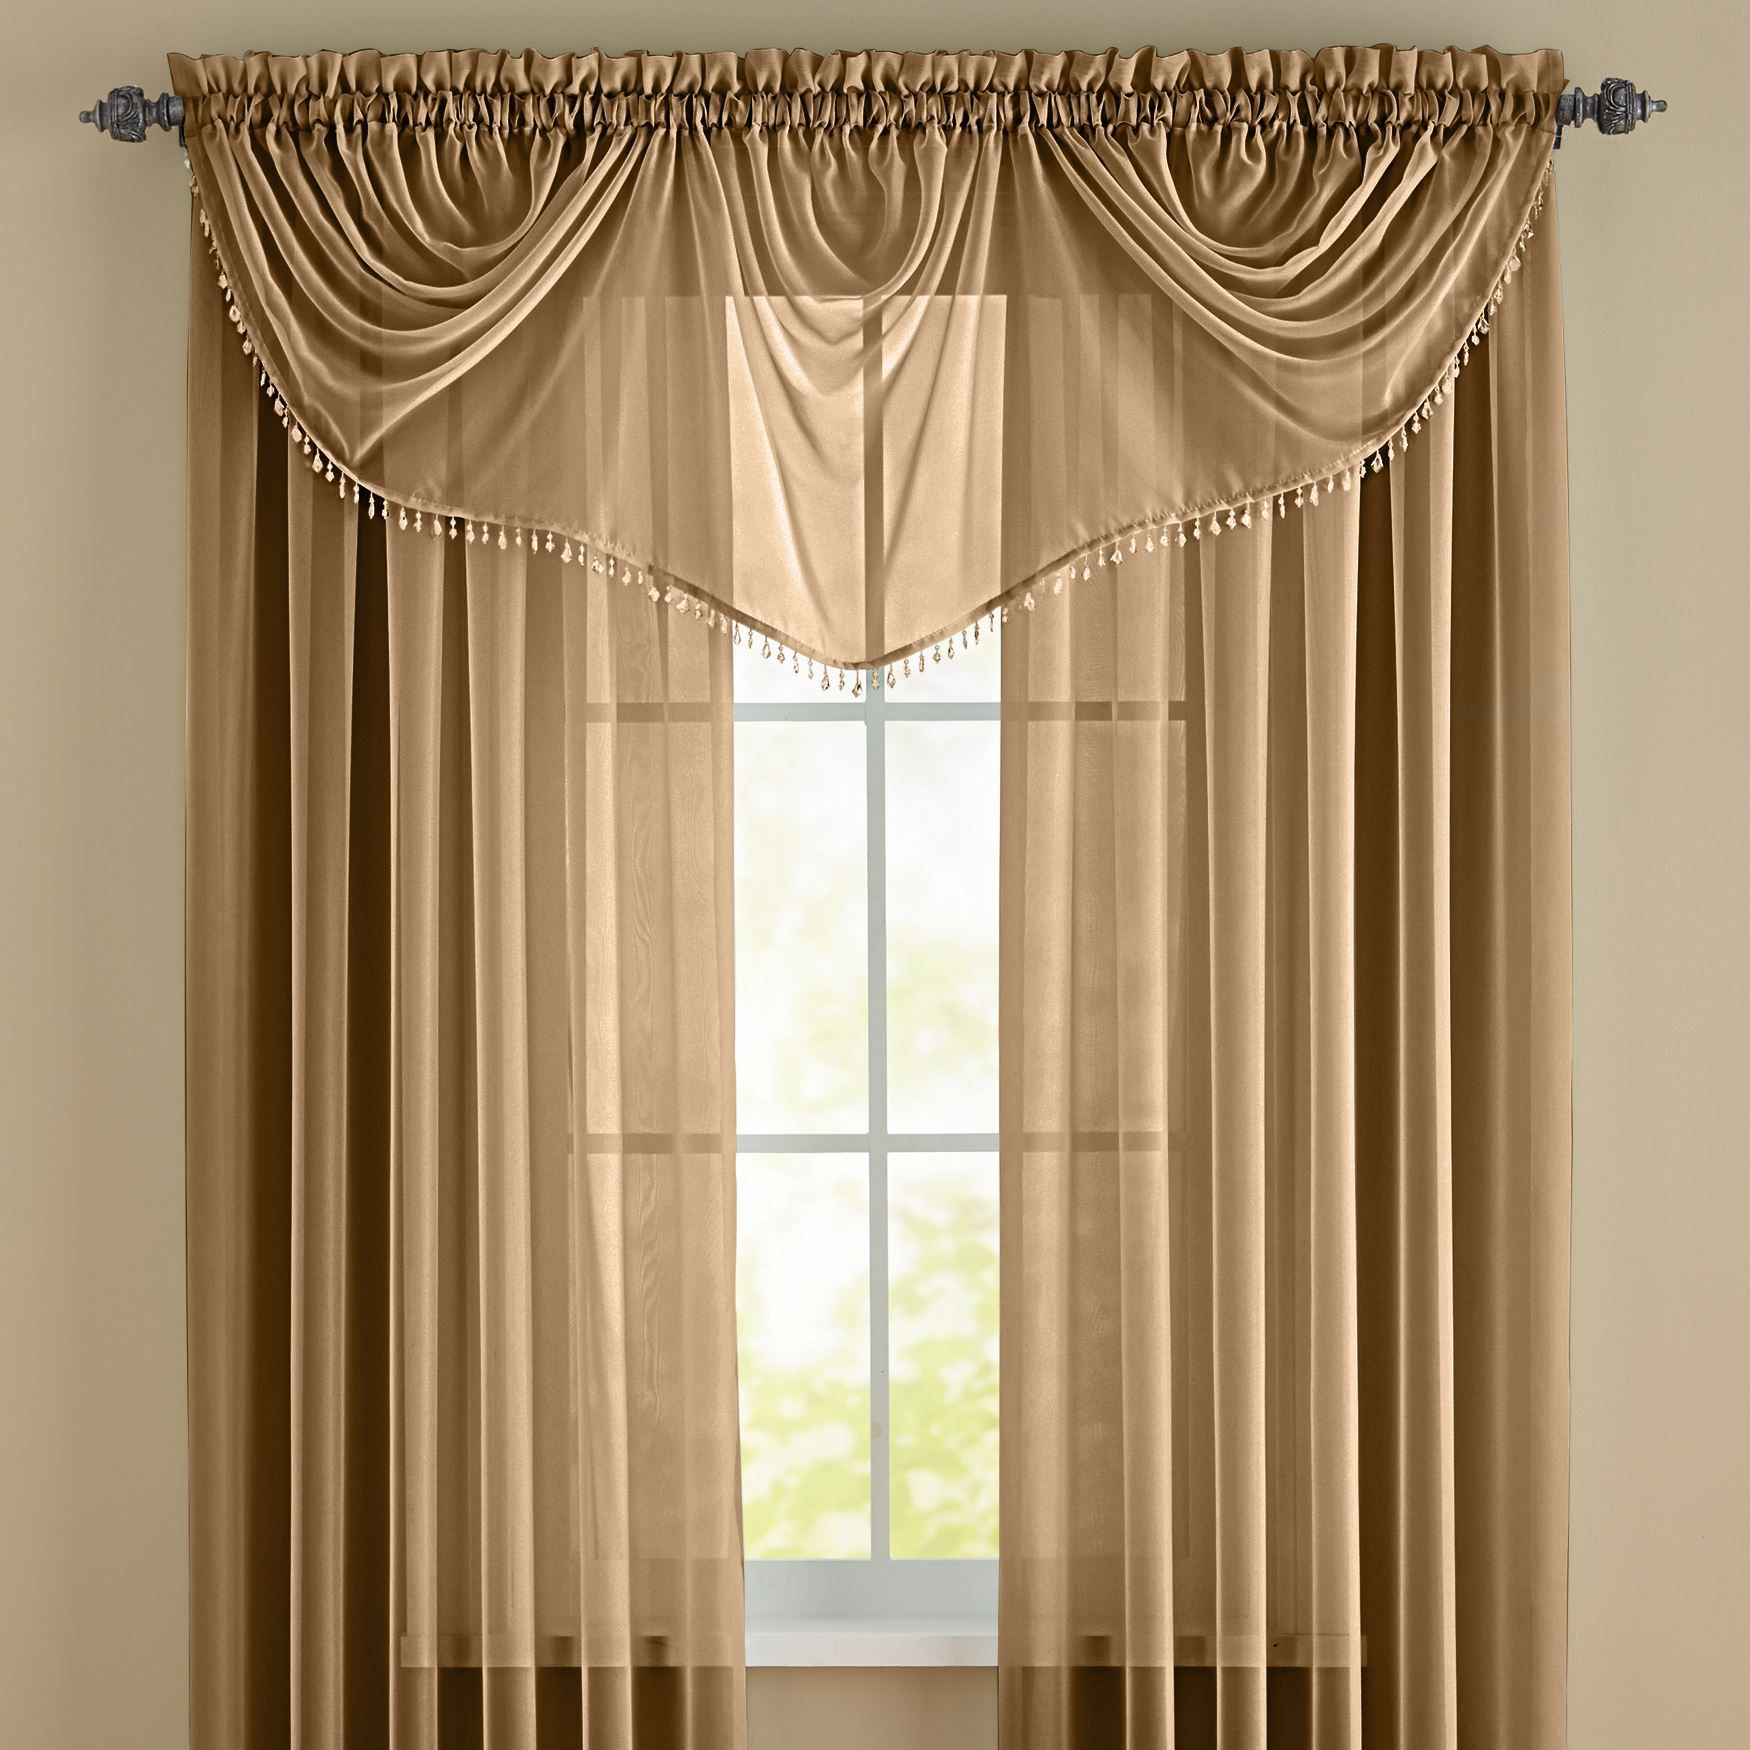 Brylanehome Studio Sheer Voile Beaded Valance